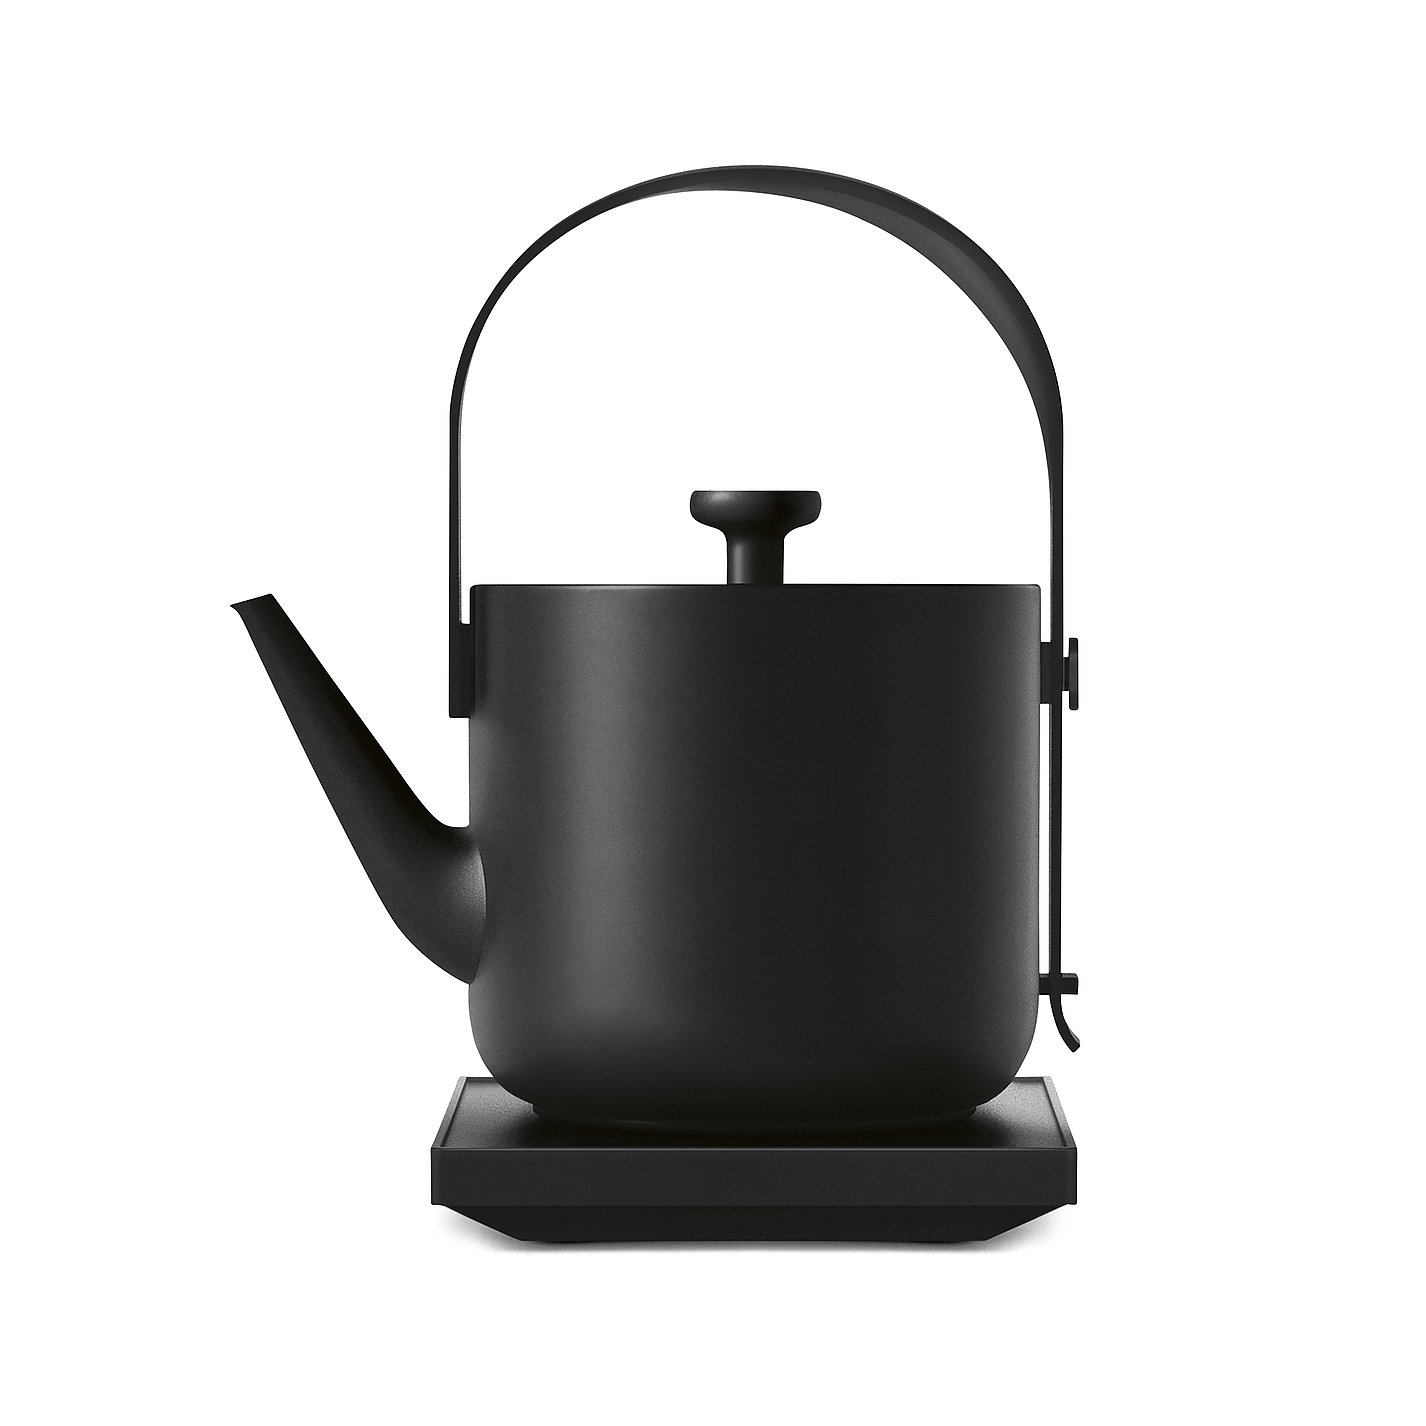 Teawith Kettle | Red Dot Design Award